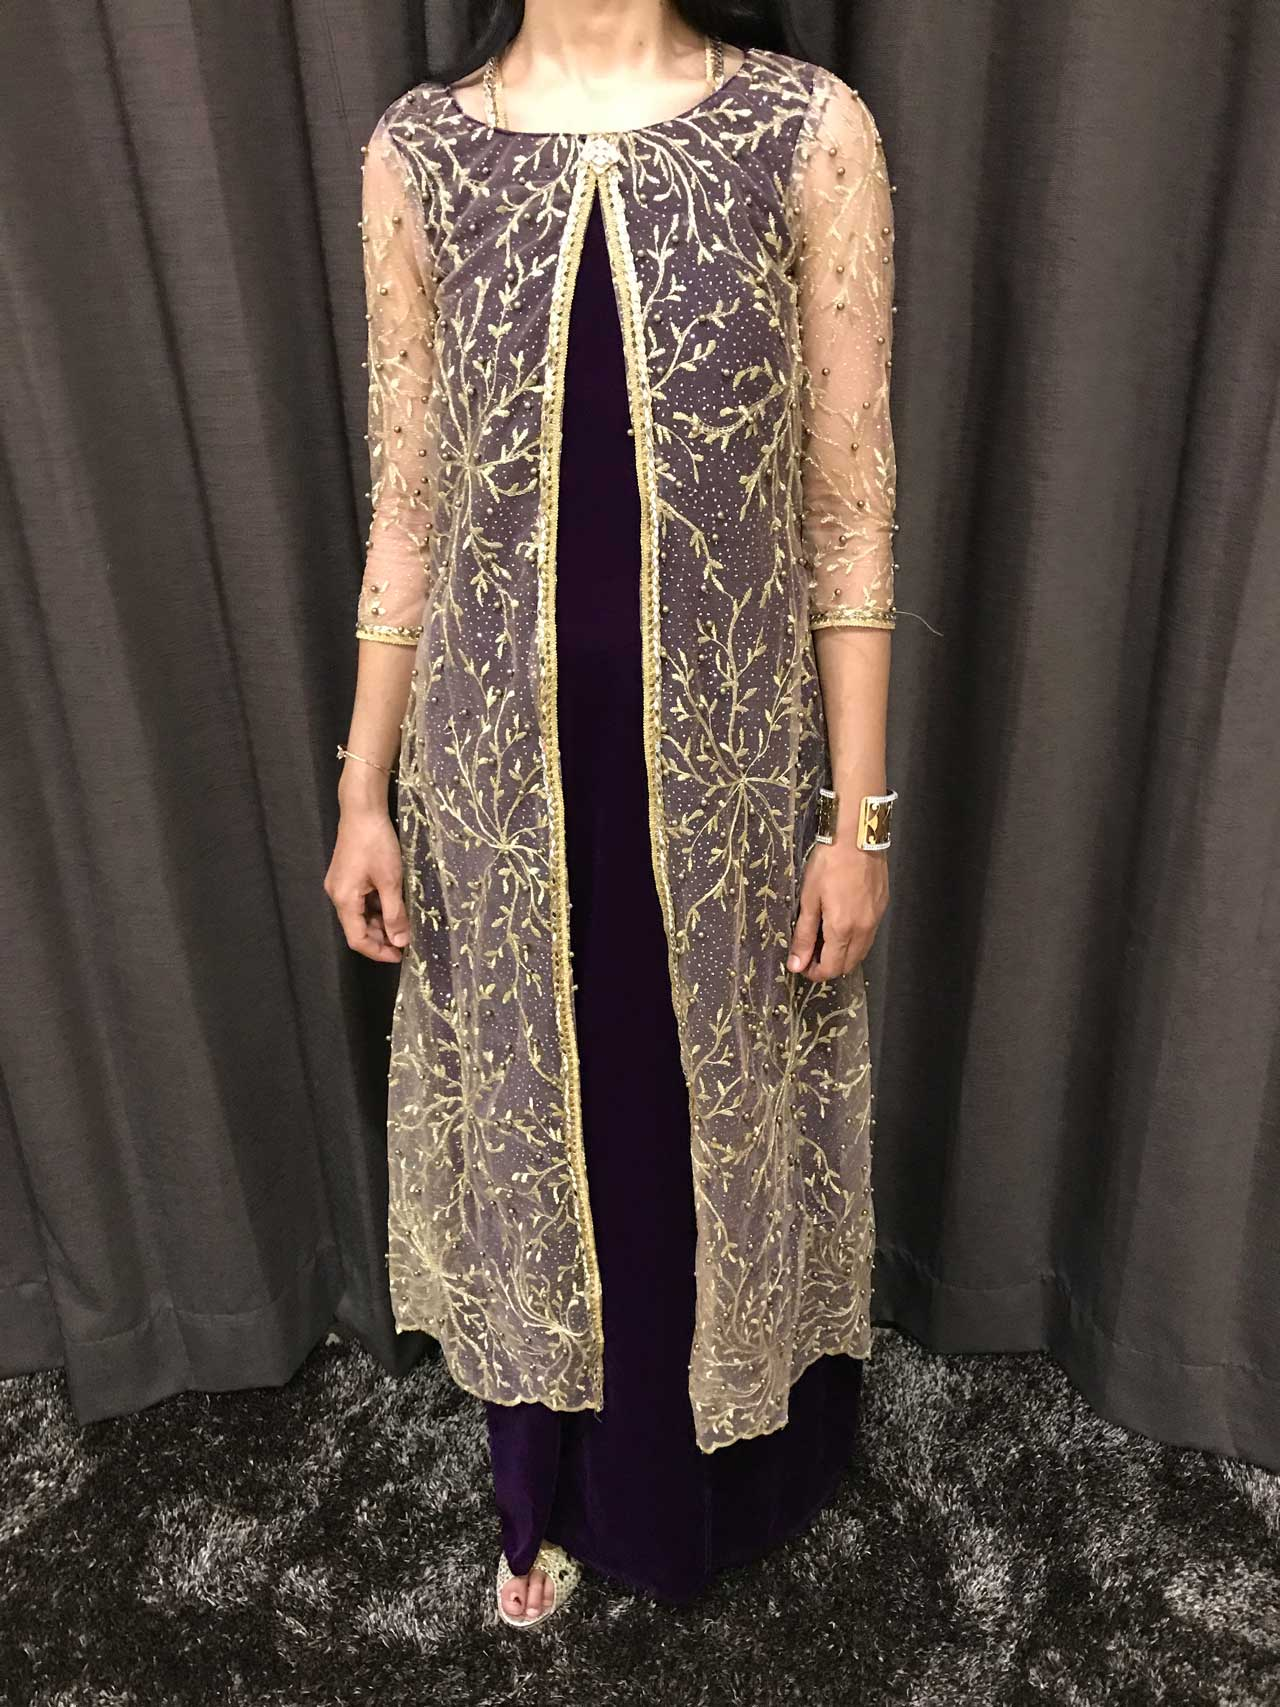 A Purple Velvet Gown with Golden Pearl and Mirror Embellishments